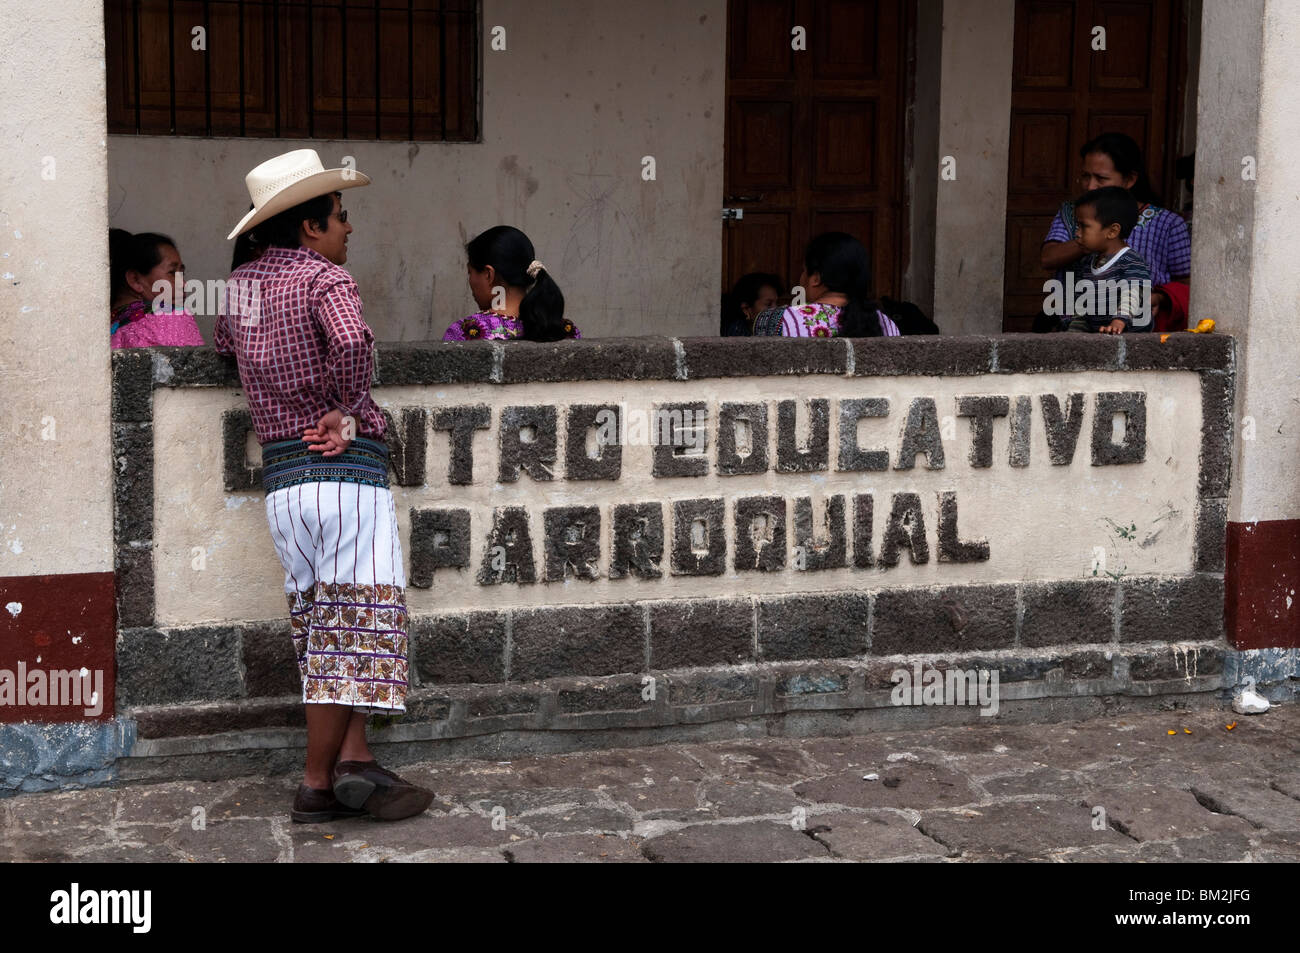 School of Santiago Atitlan, Lake Atitlan, Guatemala. - Stock Image